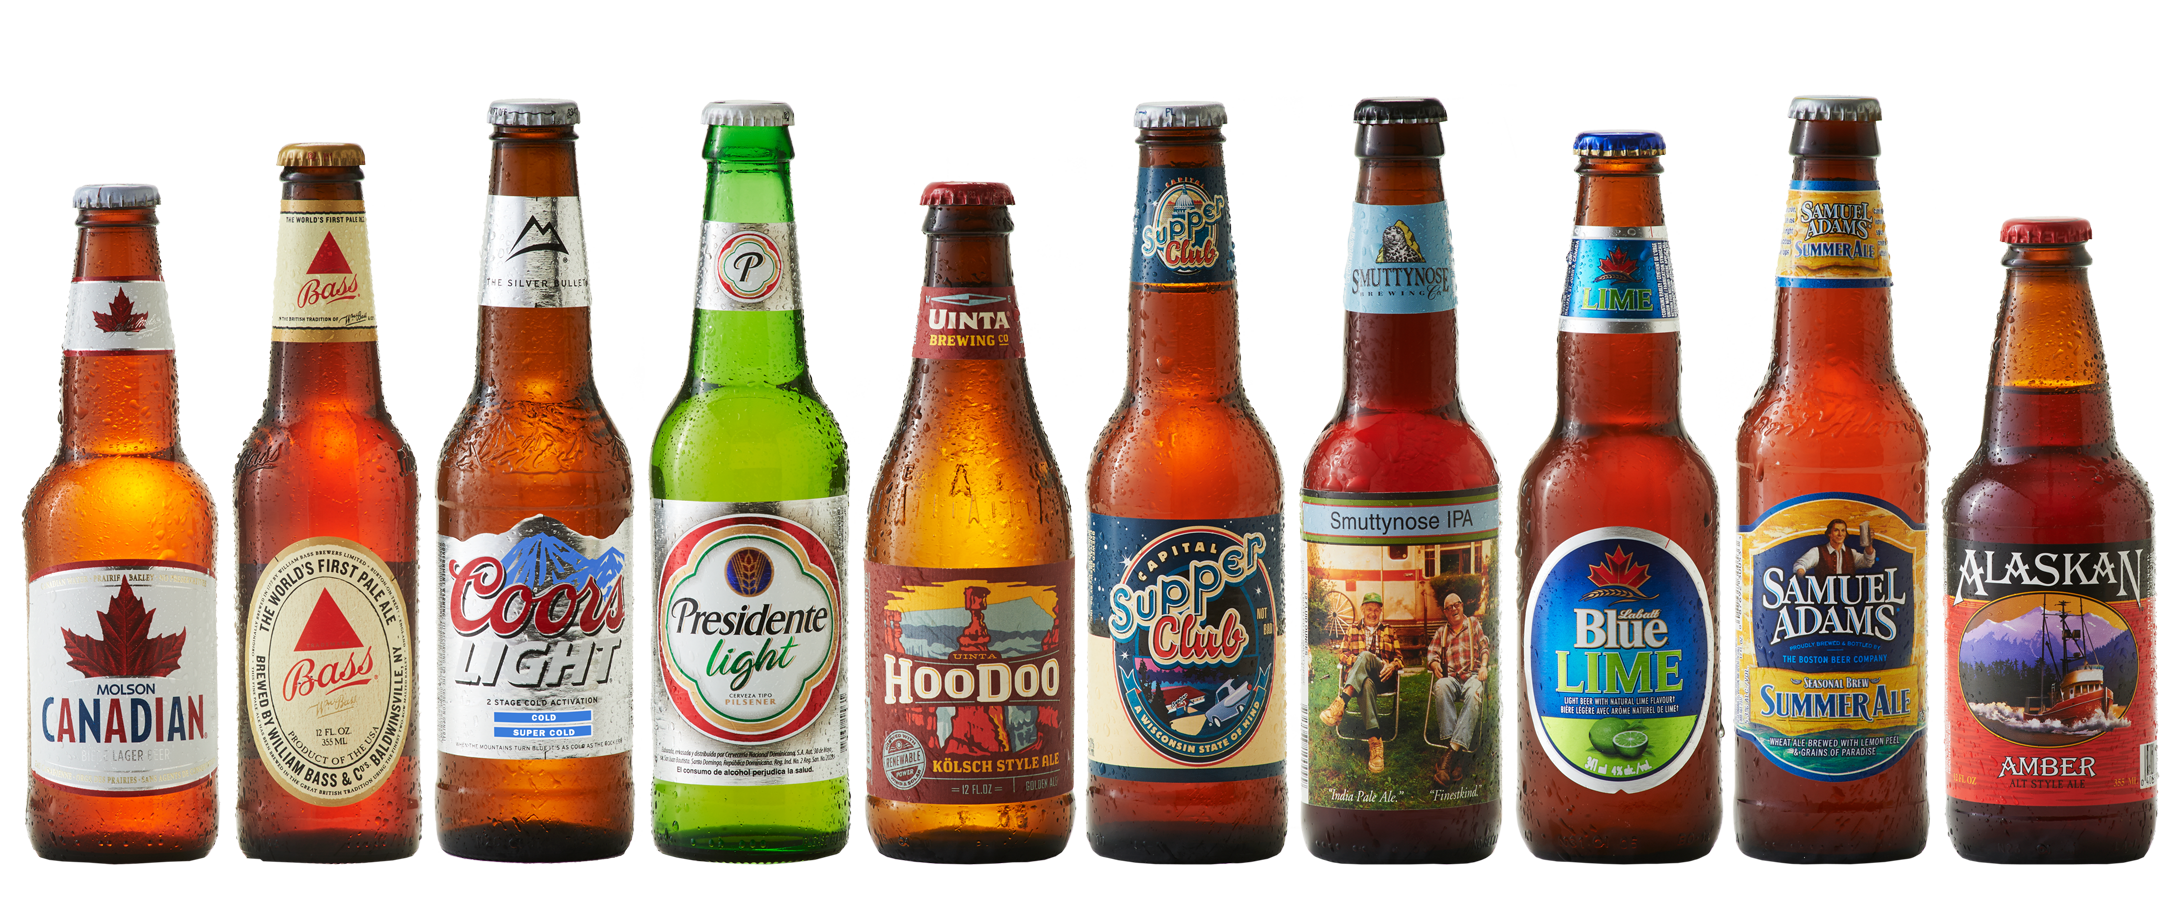 beer bottle label png